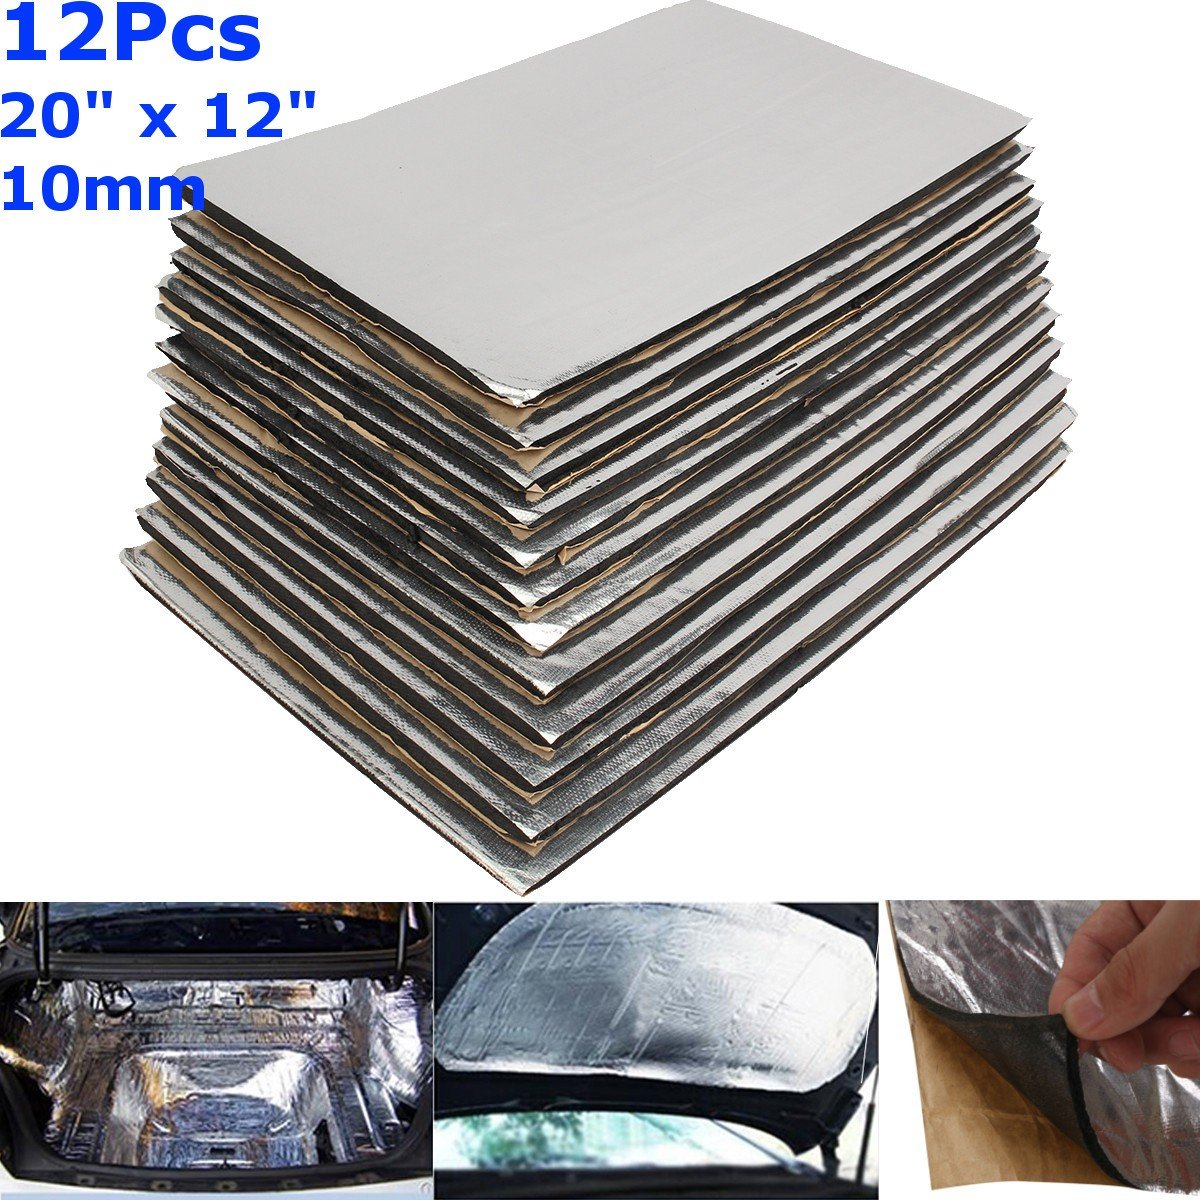 12pcs 10mm Car Sound Mat Proofing Deadener Heat Noise Insulation Deadening Mat Hood Closed Cell Foam 50*30cm